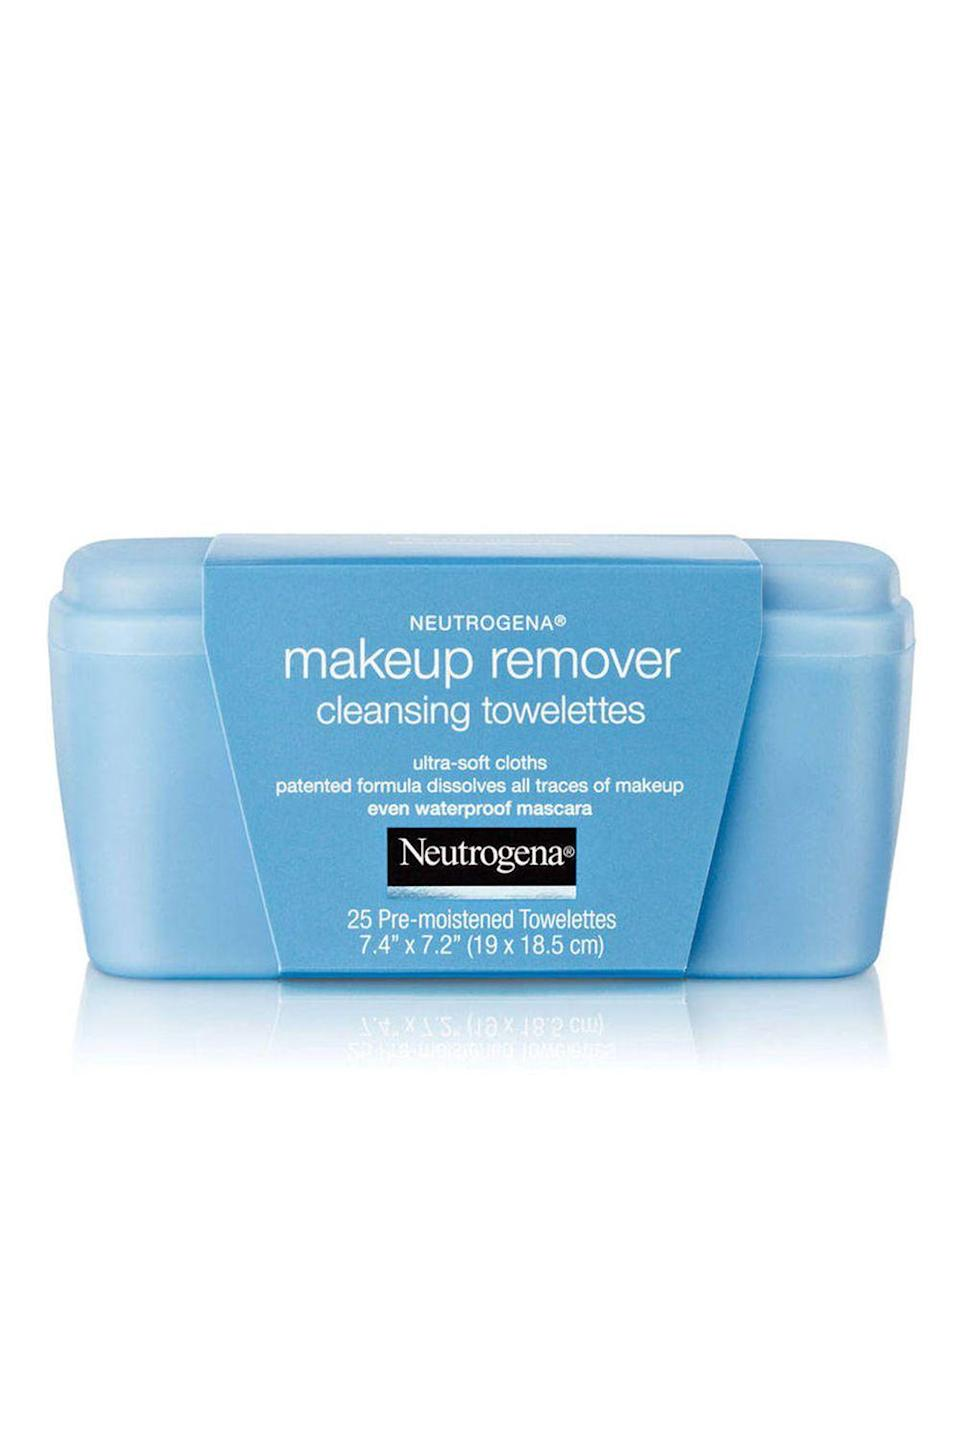 """<p><strong>Neutrogena</strong></p><p>ulta.com</p><p><strong>$10.99</strong></p><p><a href=""""https://go.redirectingat.com?id=74968X1596630&url=https%3A%2F%2Fwww.ulta.com%2Fulta%2Fbrowse%2FproductDetail.jsp%3FproductId%3DVP00172&sref=https%3A%2F%2Fwww.cosmopolitan.com%2Fstyle-beauty%2Fbeauty%2Fg19620718%2Fbest-makeup-remover%2F"""" rel=""""nofollow noopener"""" target=""""_blank"""" data-ylk=""""slk:Shop Now"""" class=""""link rapid-noclick-resp"""">Shop Now</a></p><p>All 25 of these premoistened makeup remover wipes are gentle enough to use around your eye area (yes, the formula even removes waterproof makeup) and <strong>can clear away foundation and <a href=""""https://www.cosmopolitan.com/style-beauty/beauty/g13108425/eyeshadow-palette-sets/"""" rel=""""nofollow noopener"""" target=""""_blank"""" data-ylk=""""slk:eyeshadow"""" class=""""link rapid-noclick-resp"""">eyeshadow</a> in just one swipe.</strong></p>"""